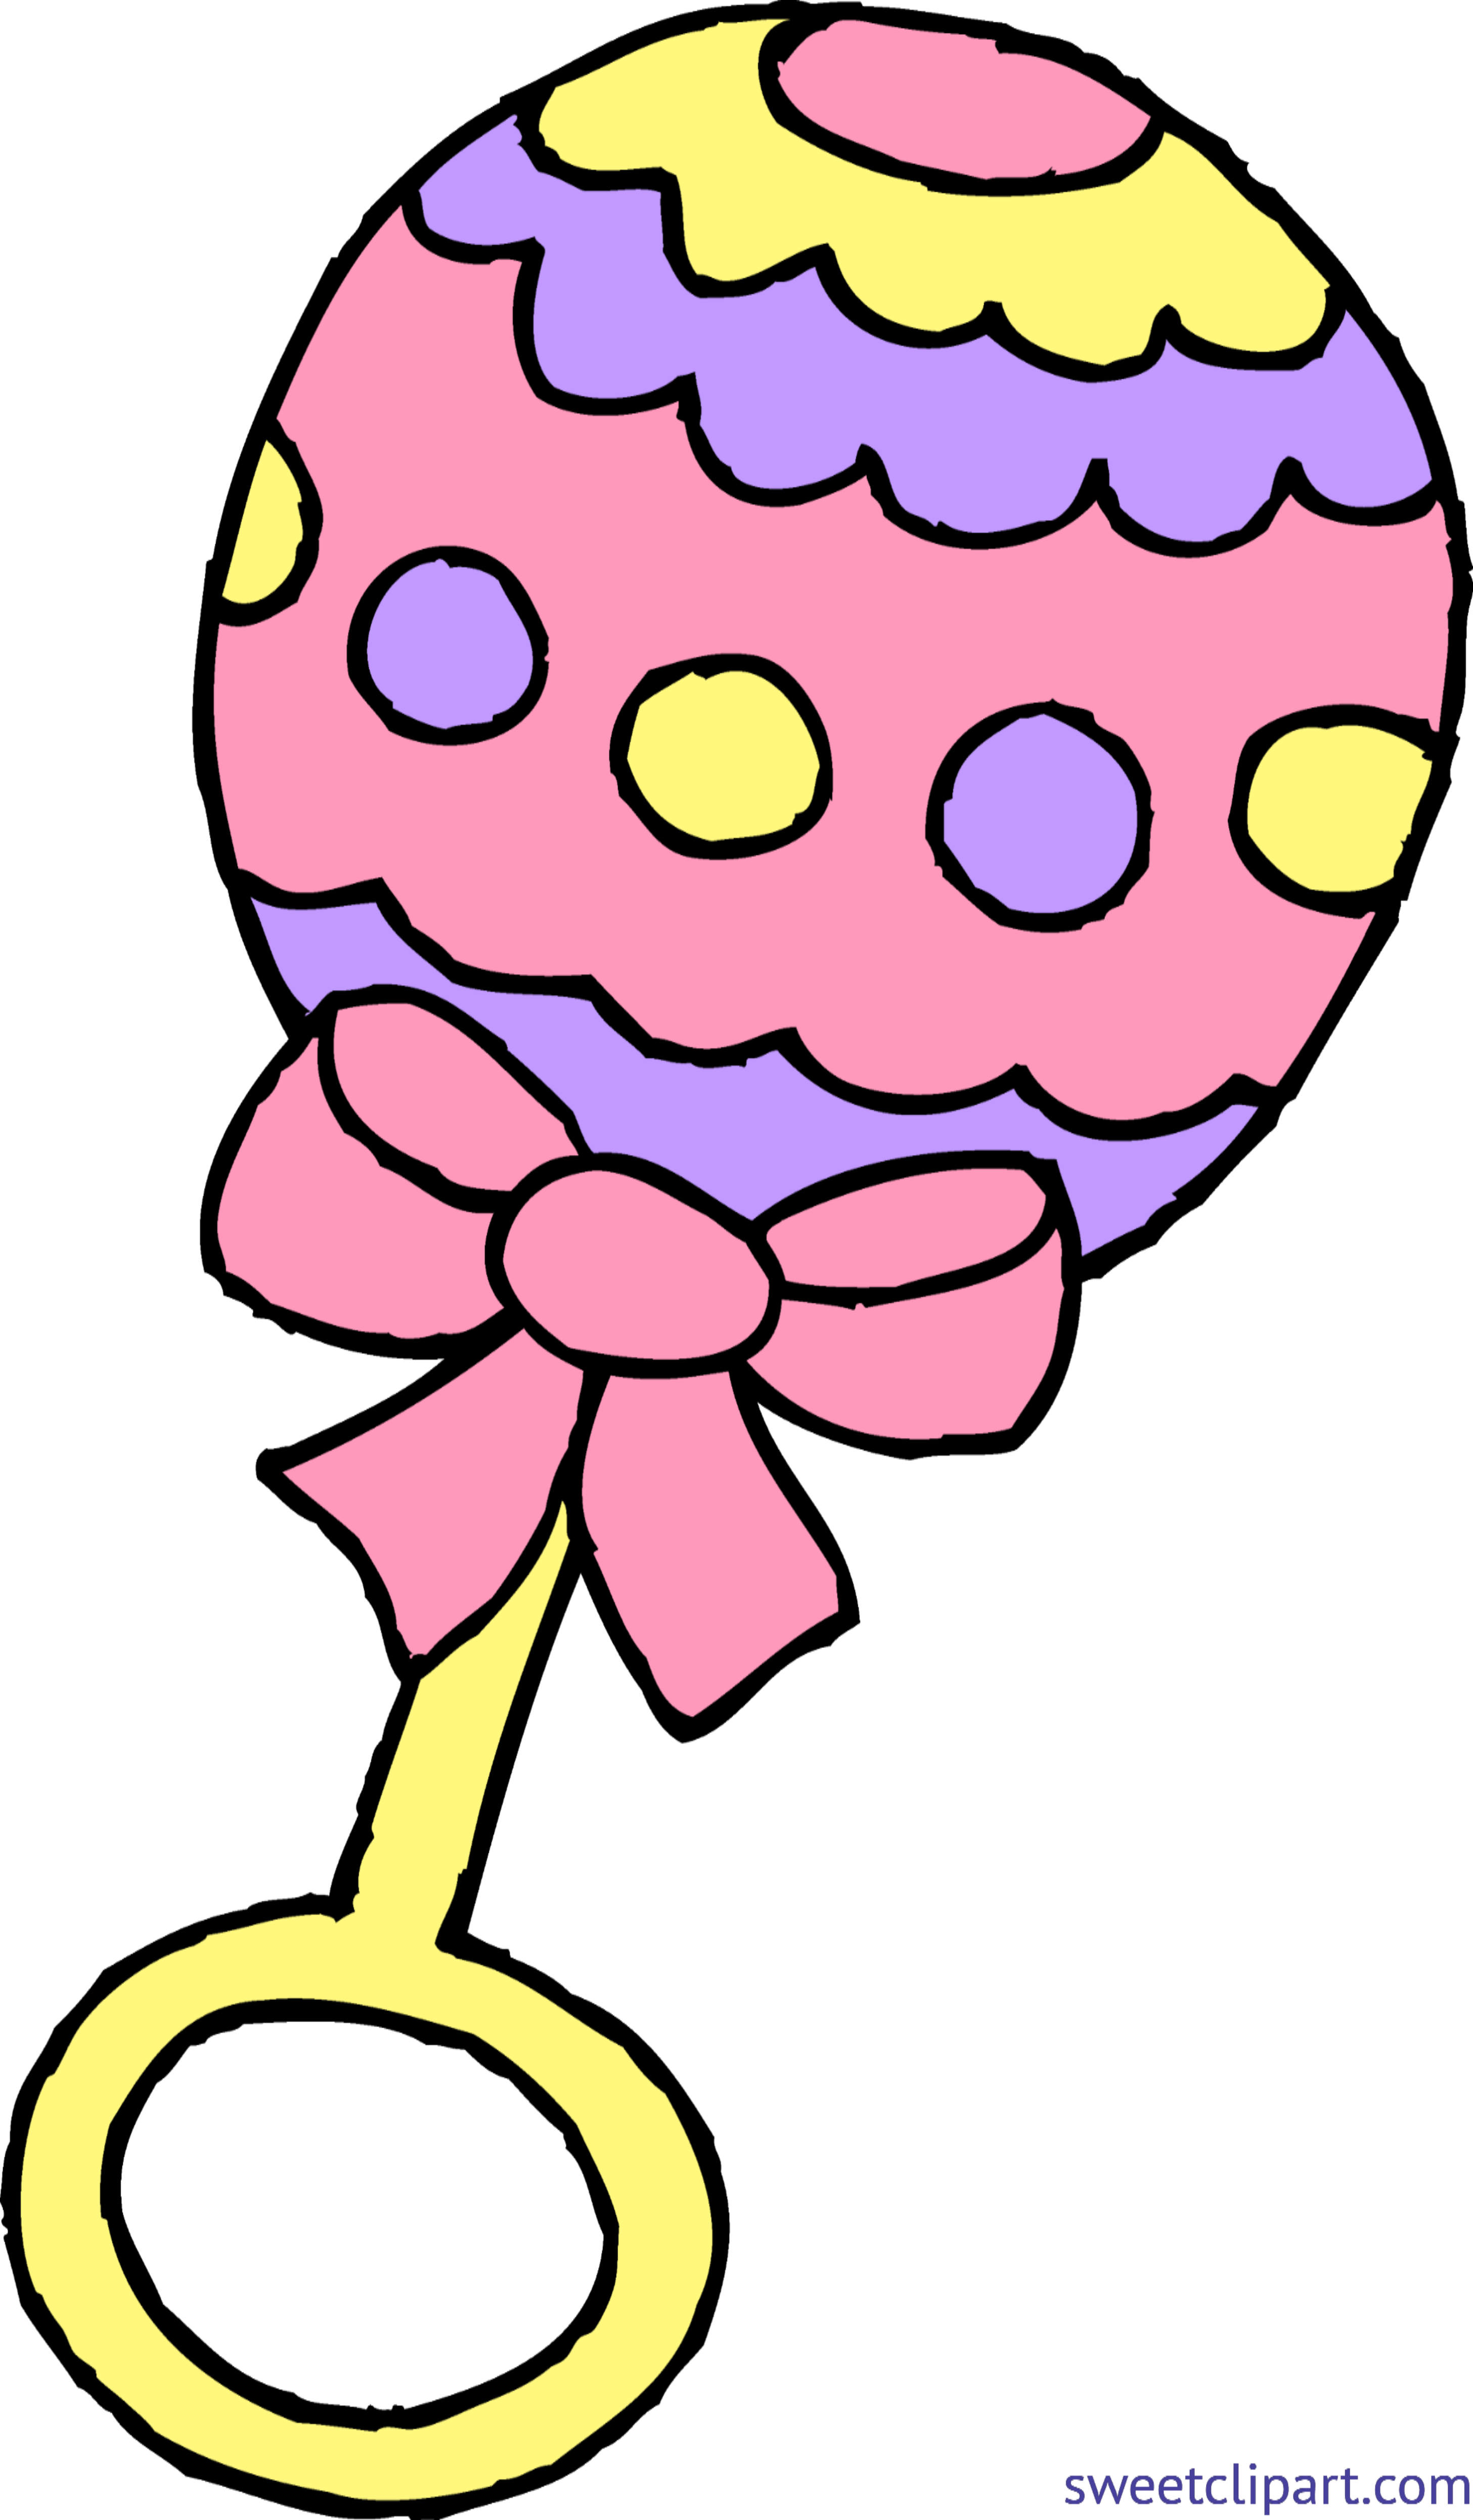 baby rattle clipart at getdrawings com free for personal use baby rh getdrawings com baby rattle clipart png baby rattle clipart png